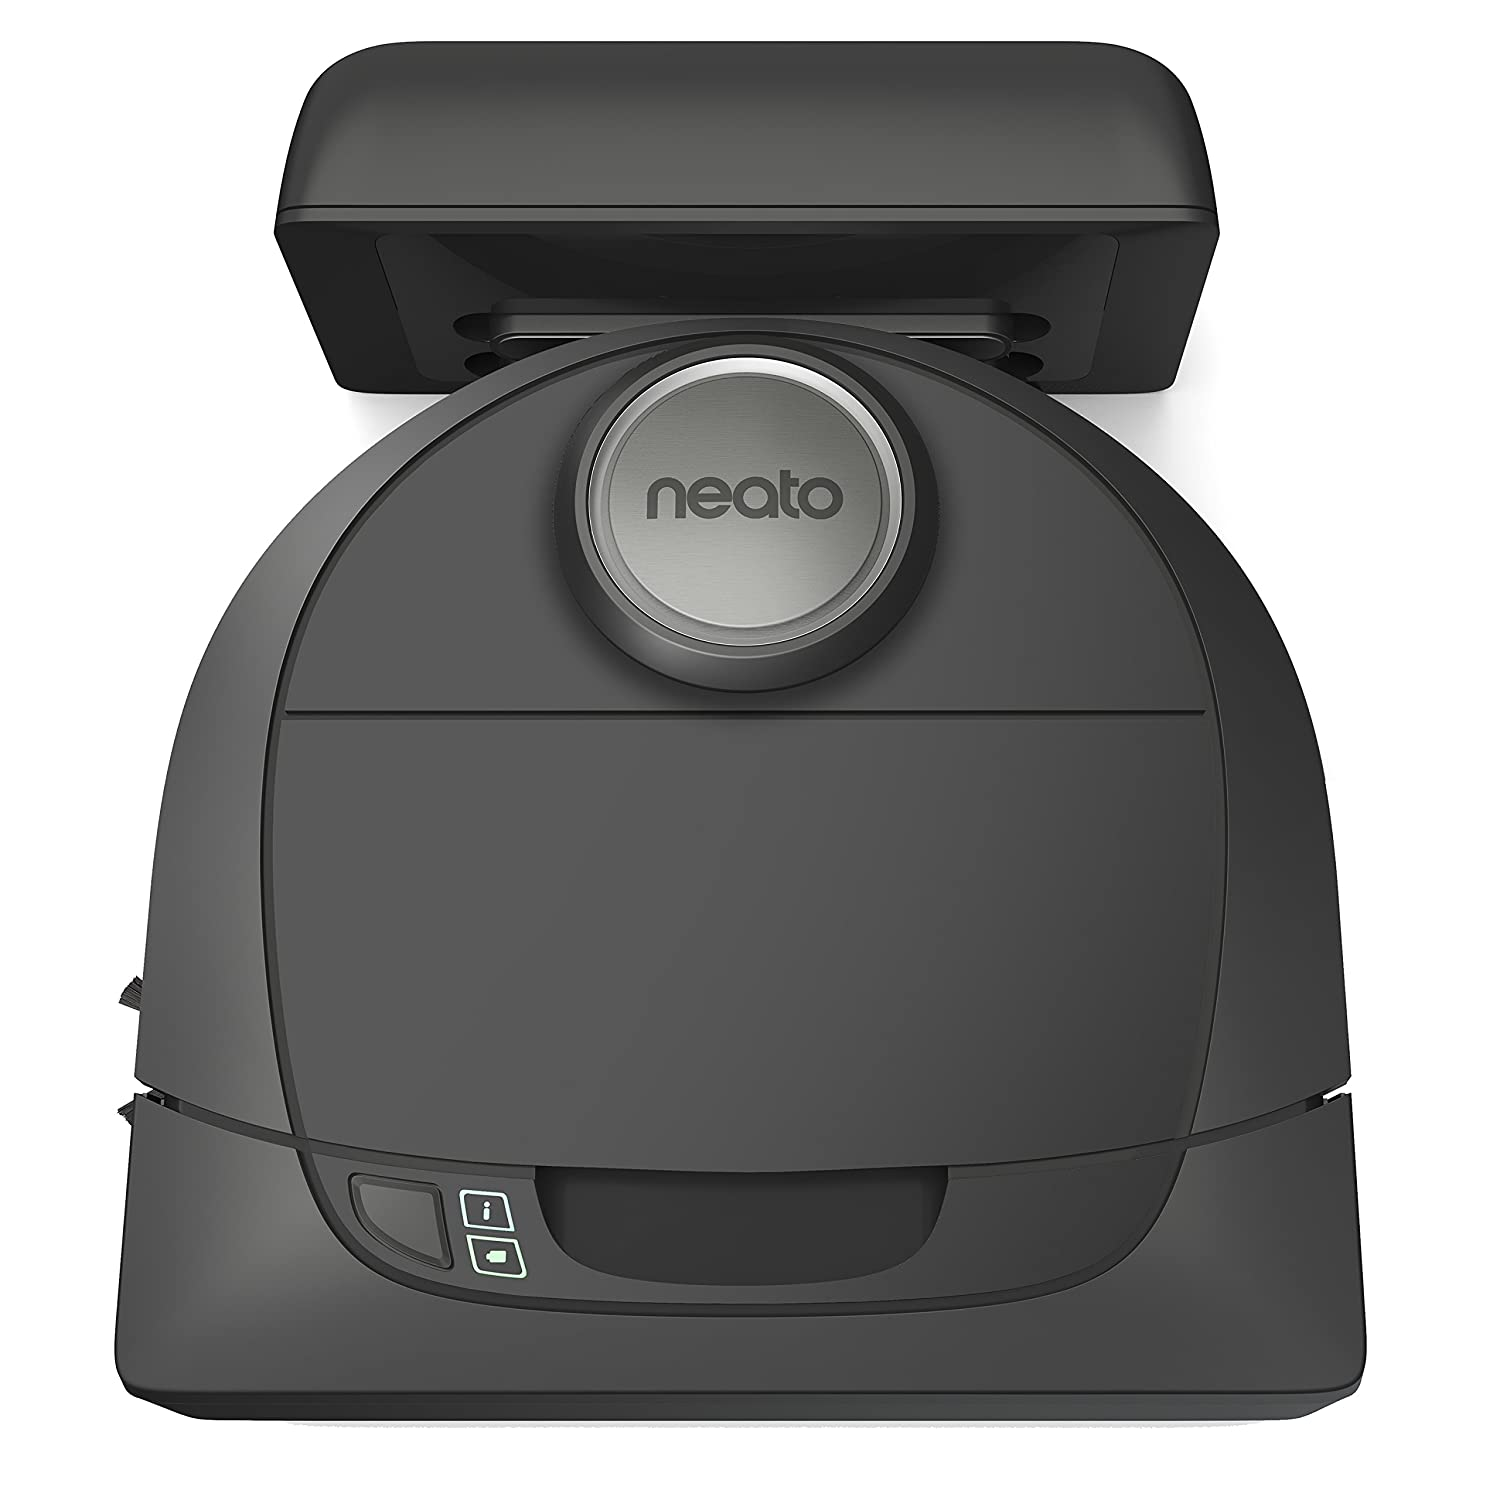 Neato Botvac Aspirateur Robot Intelligent